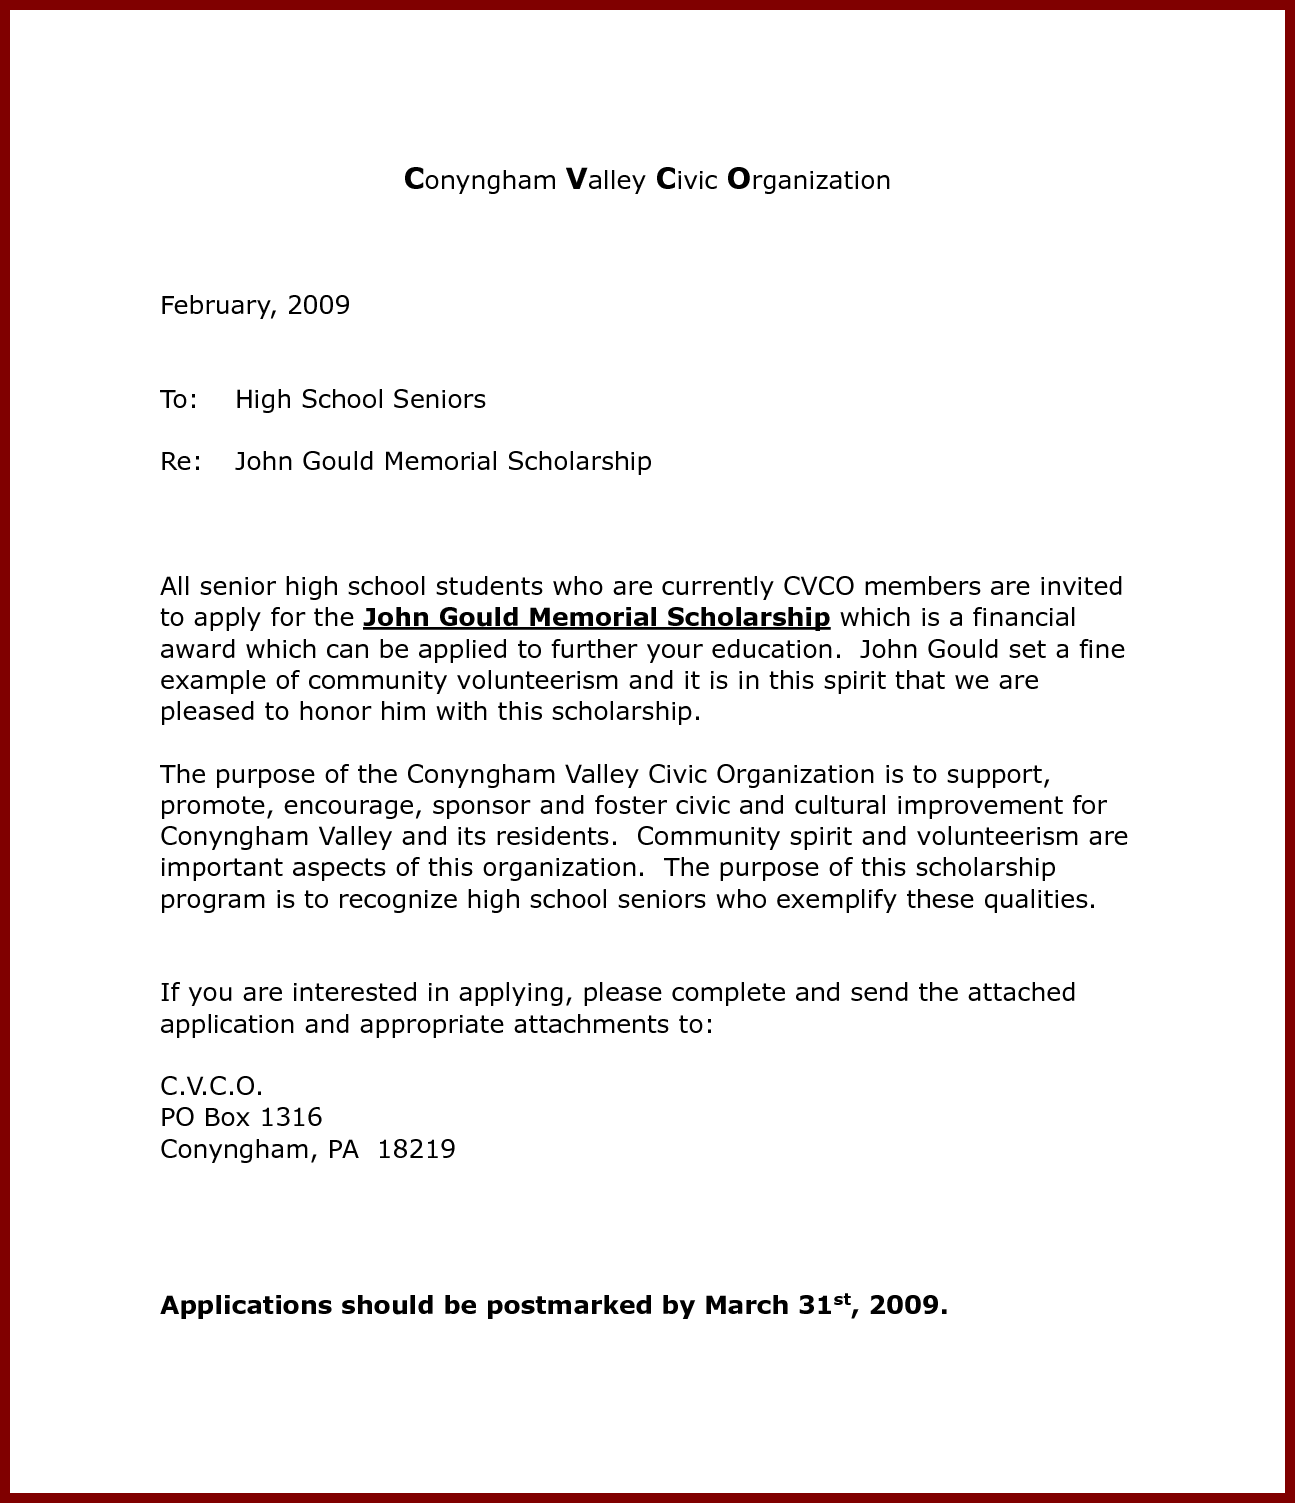 sample cover letters for government jobs letter samples - Cover Letter For Government Job